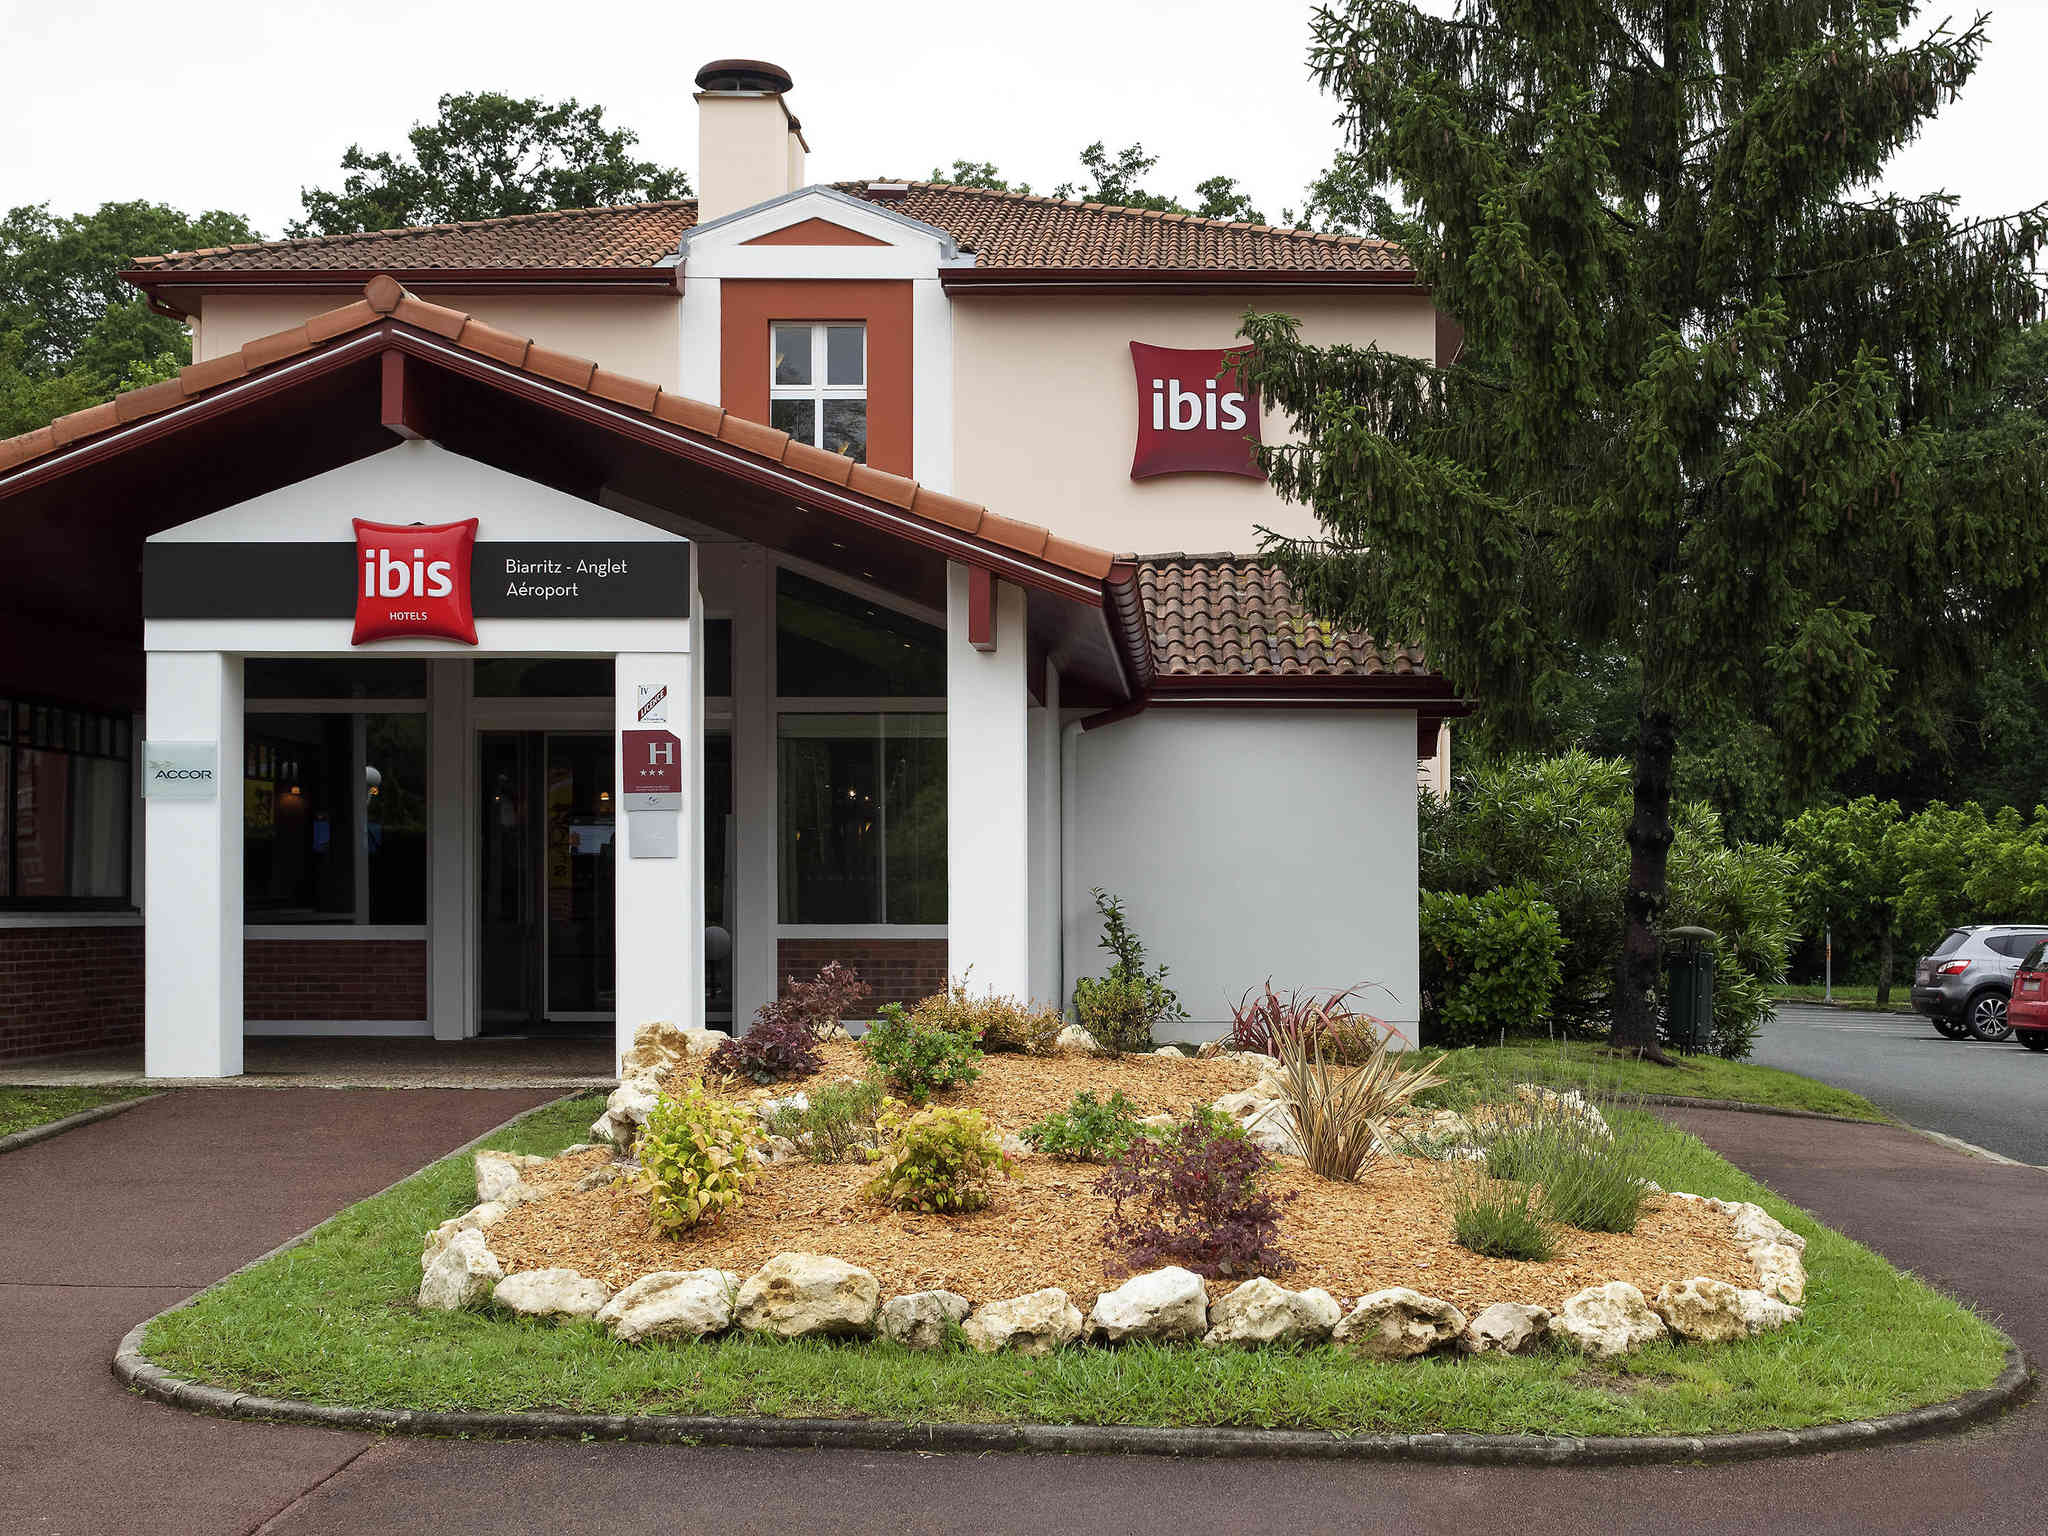 Hotell – ibis Biarritz Anglet Aéroport